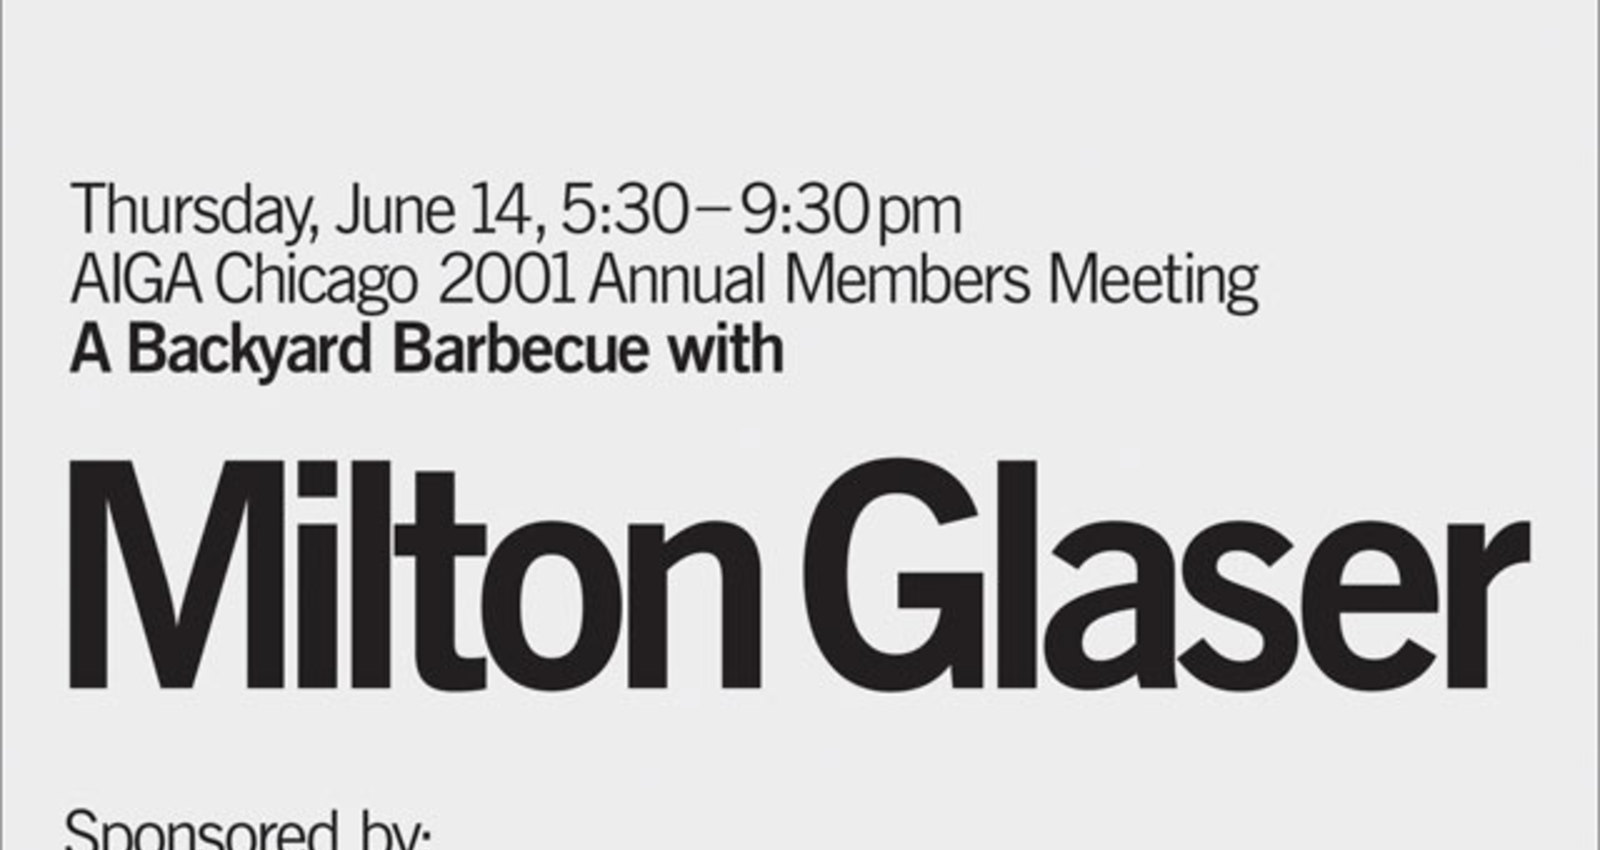 AIGA Chicago Annual Meeting 2001 Poster